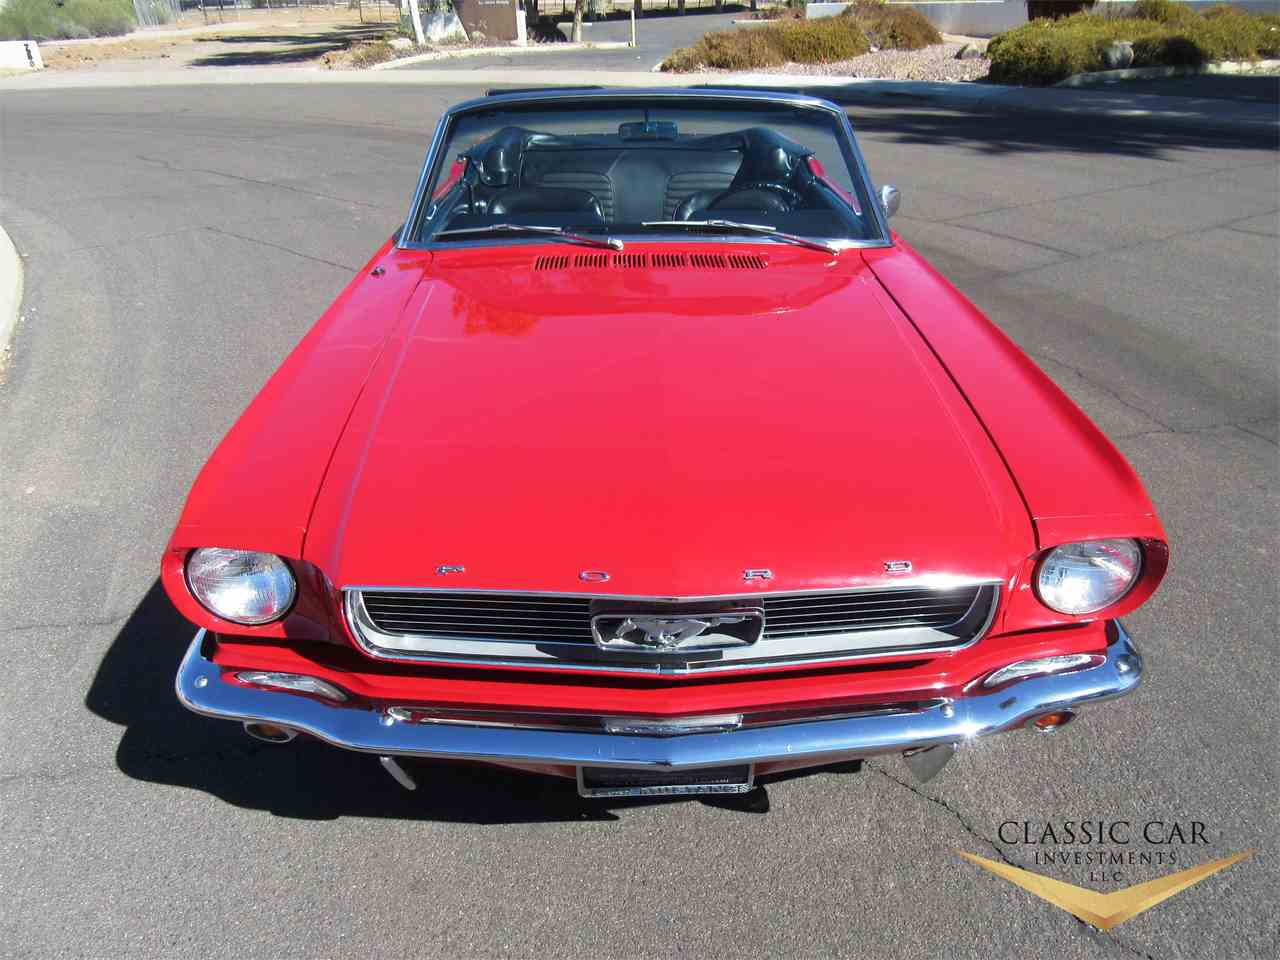 Large Picture of '66 Ford Mustang - $29,500.00 Offered by Classic Car Investments LLC - MTOM